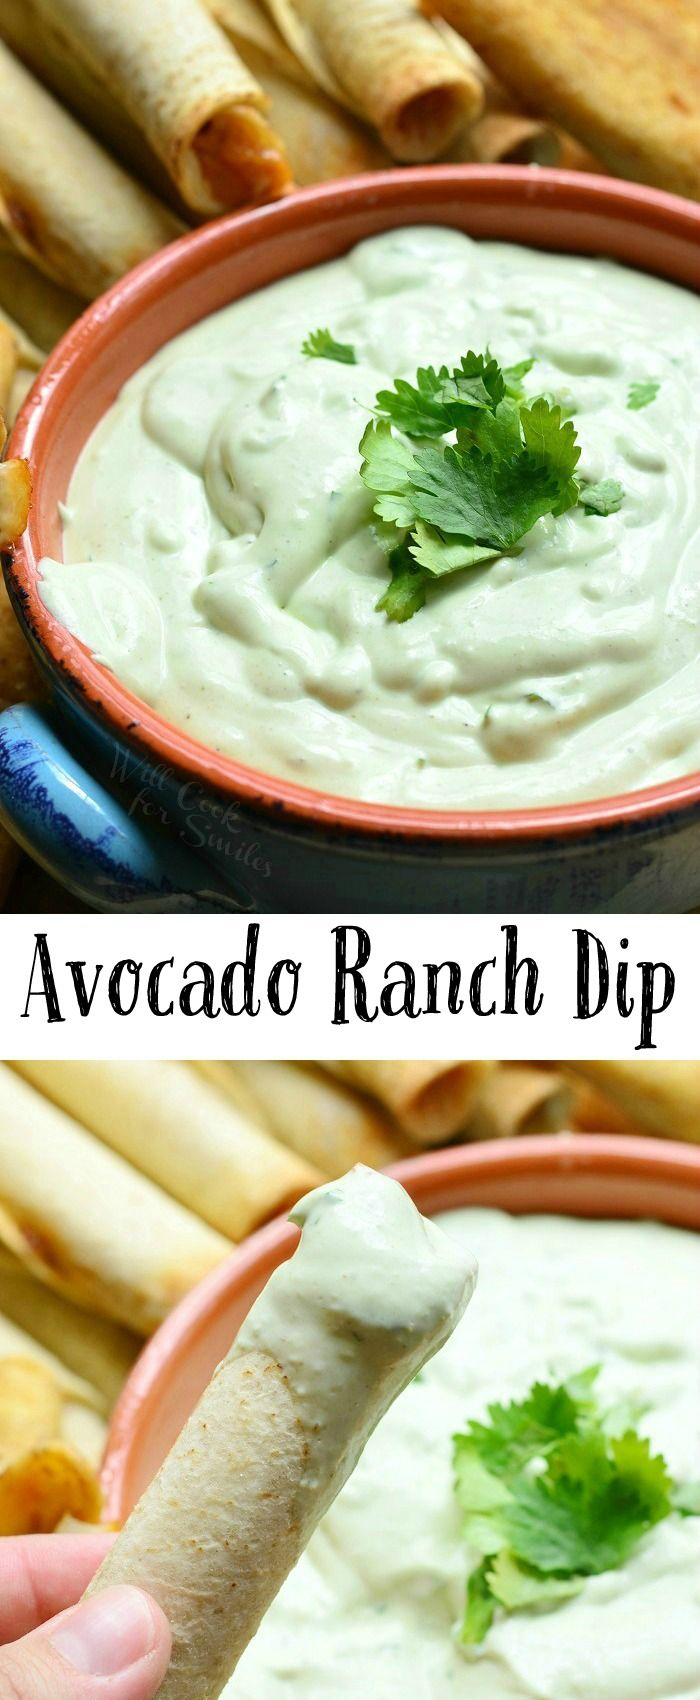 Avocado Ranch Dip | from willcookforsmiles.com #appetizer #gameday #snack